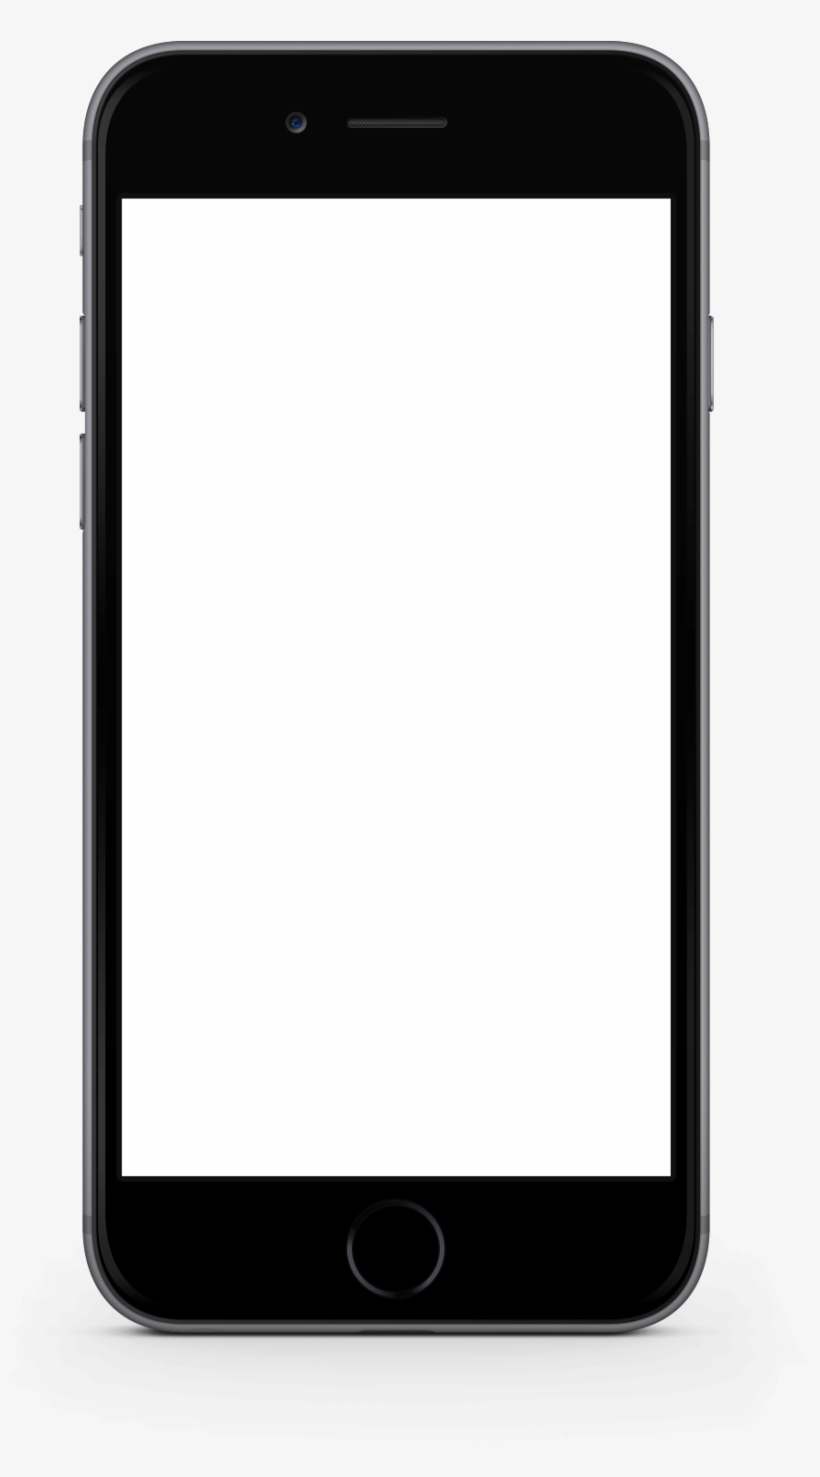 Library of phone frame banner free download download png files.